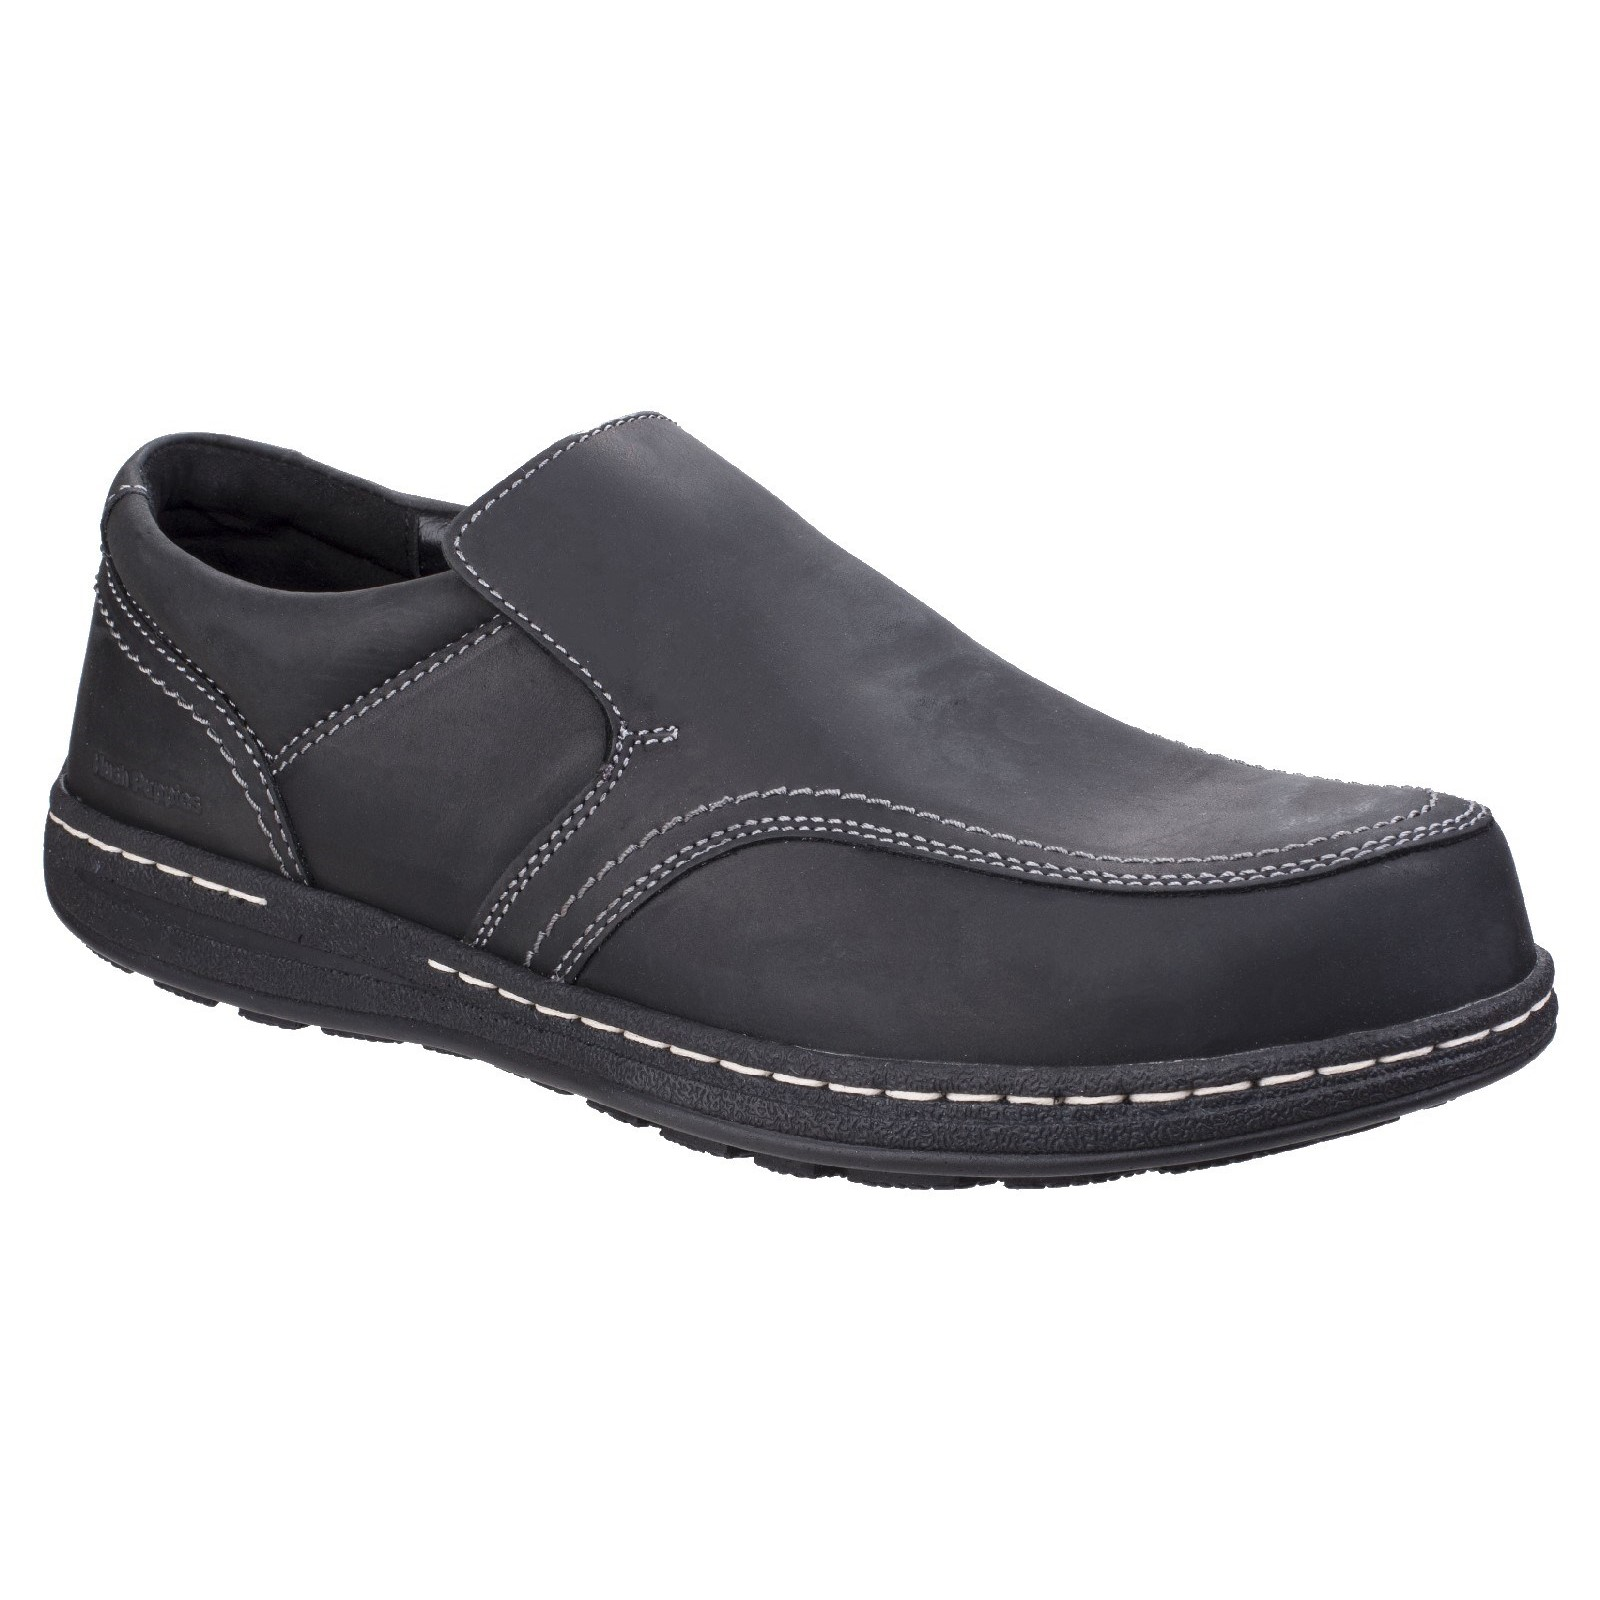 Hush Puppies Mens Vindo Victory Formal Slip On shoes